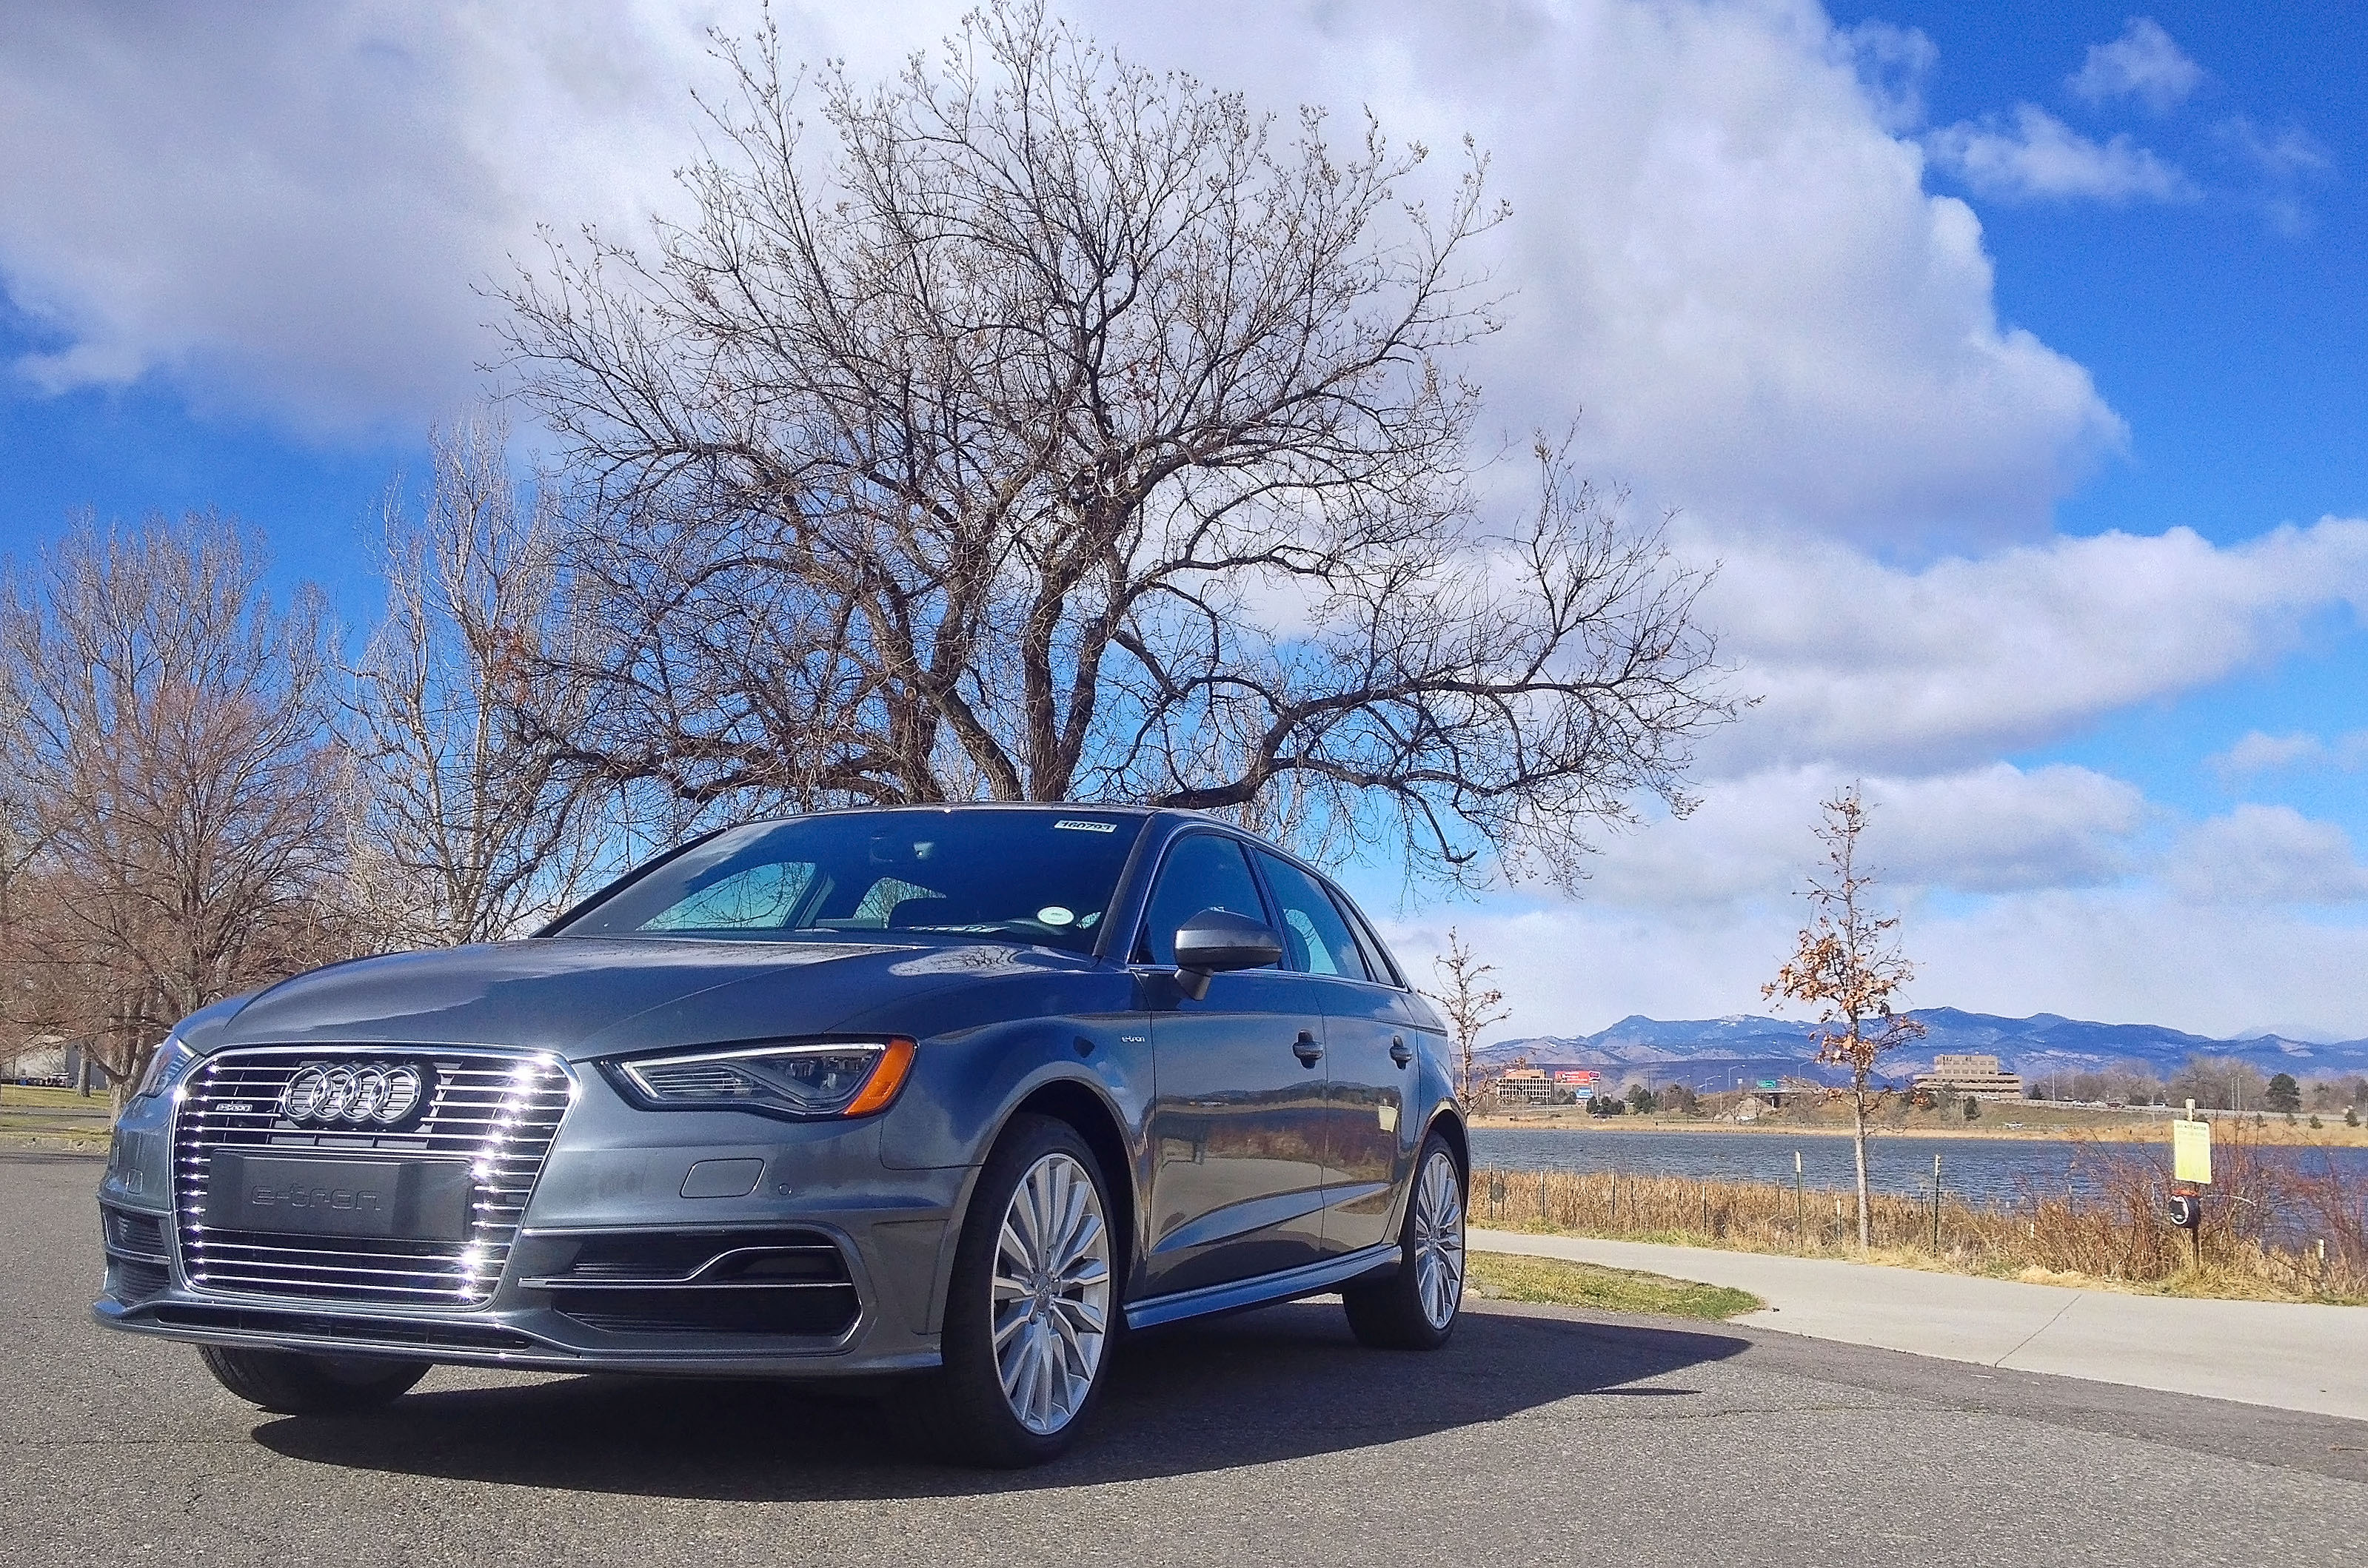 Audi A3 e-tron parked near Berkeley Lake in Denver, CO. The beautiful Rocky Mountains are visible in the background.